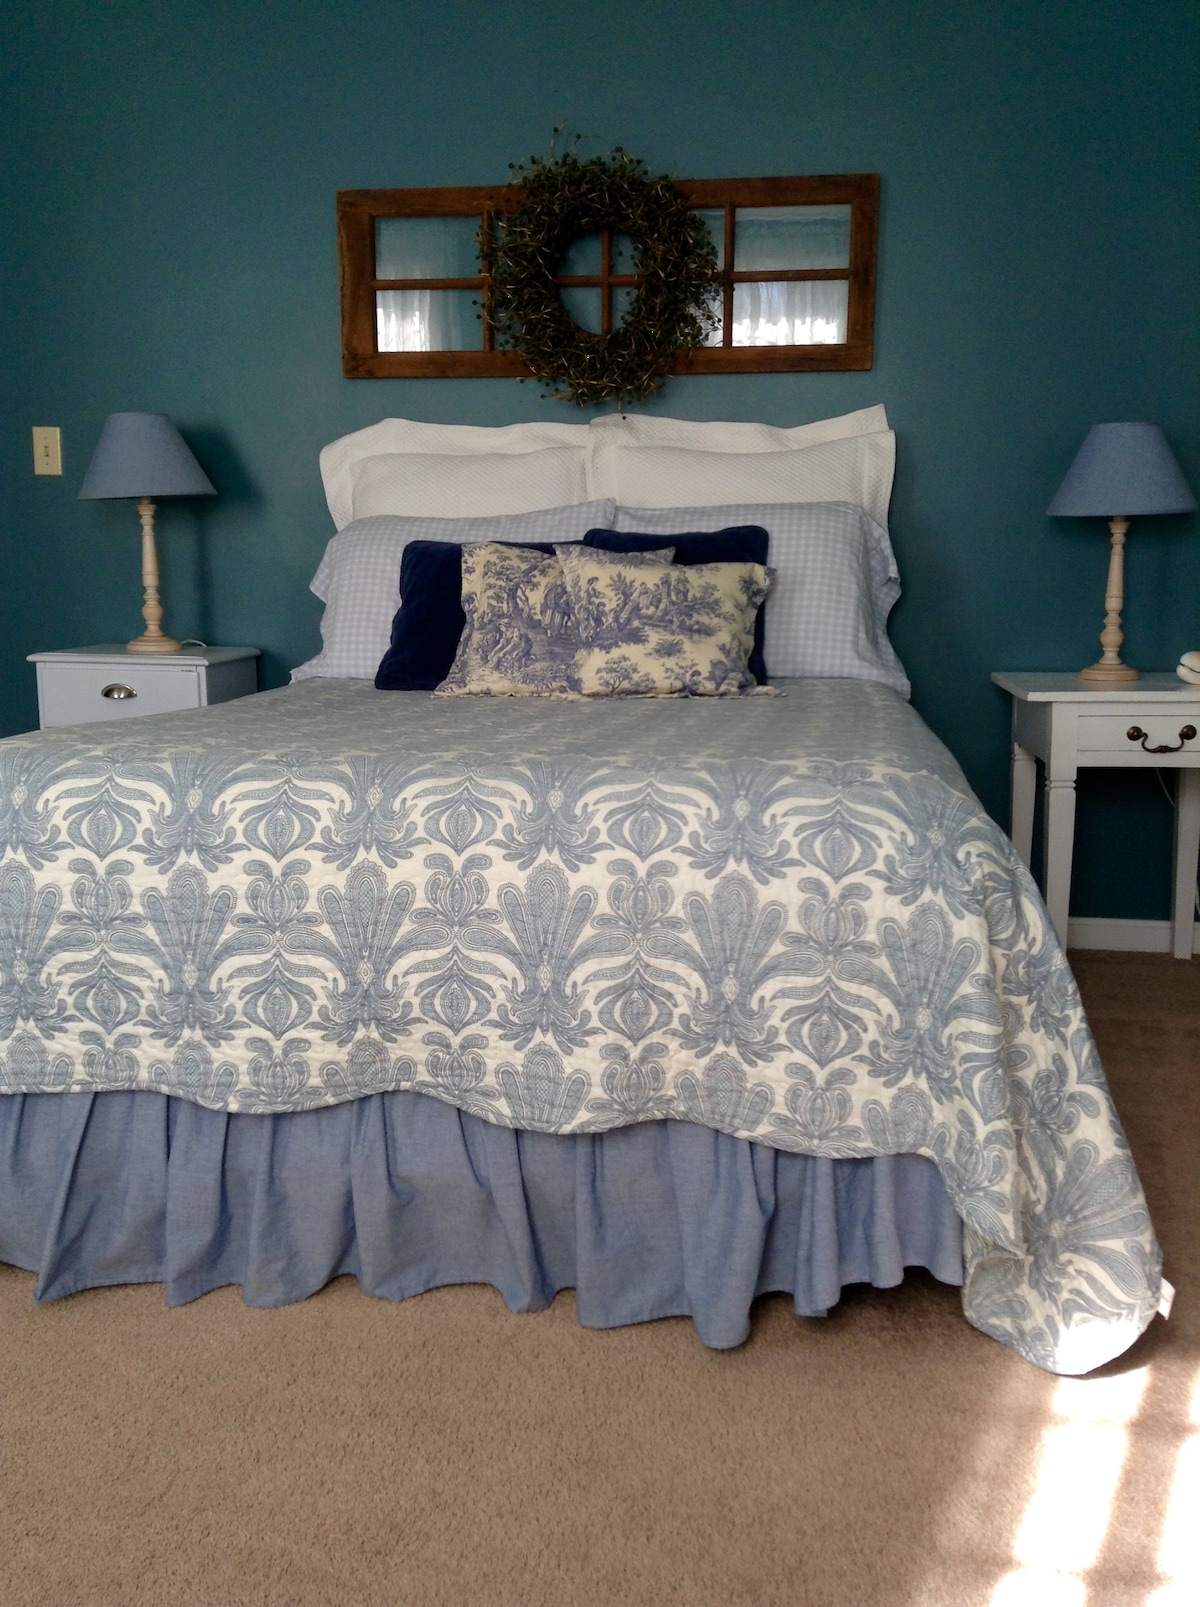 New England Charm, Cozy Blue Room